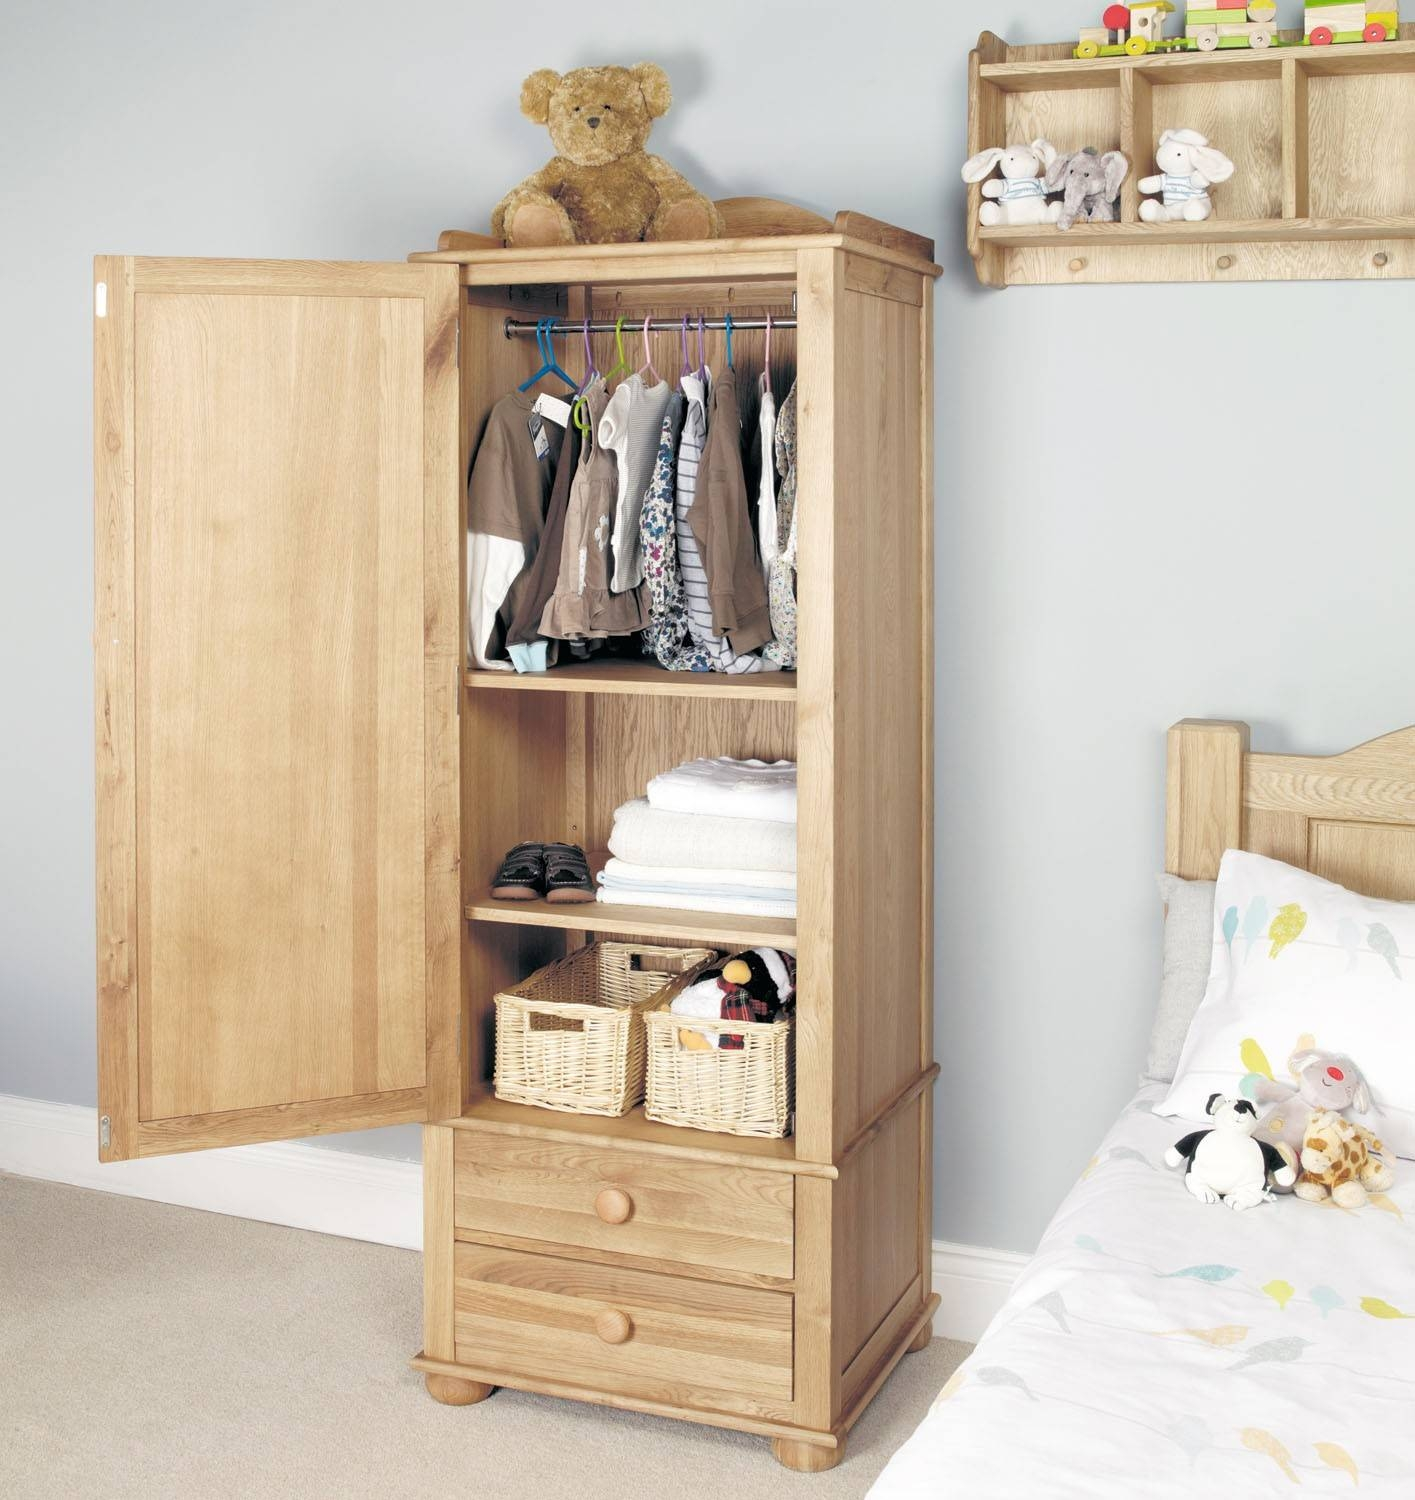 Amelie Oak Childrens Single Wardrobe – Amelie Oak Children's In Single Oak Wardrobes With Drawers (View 1 of 15)